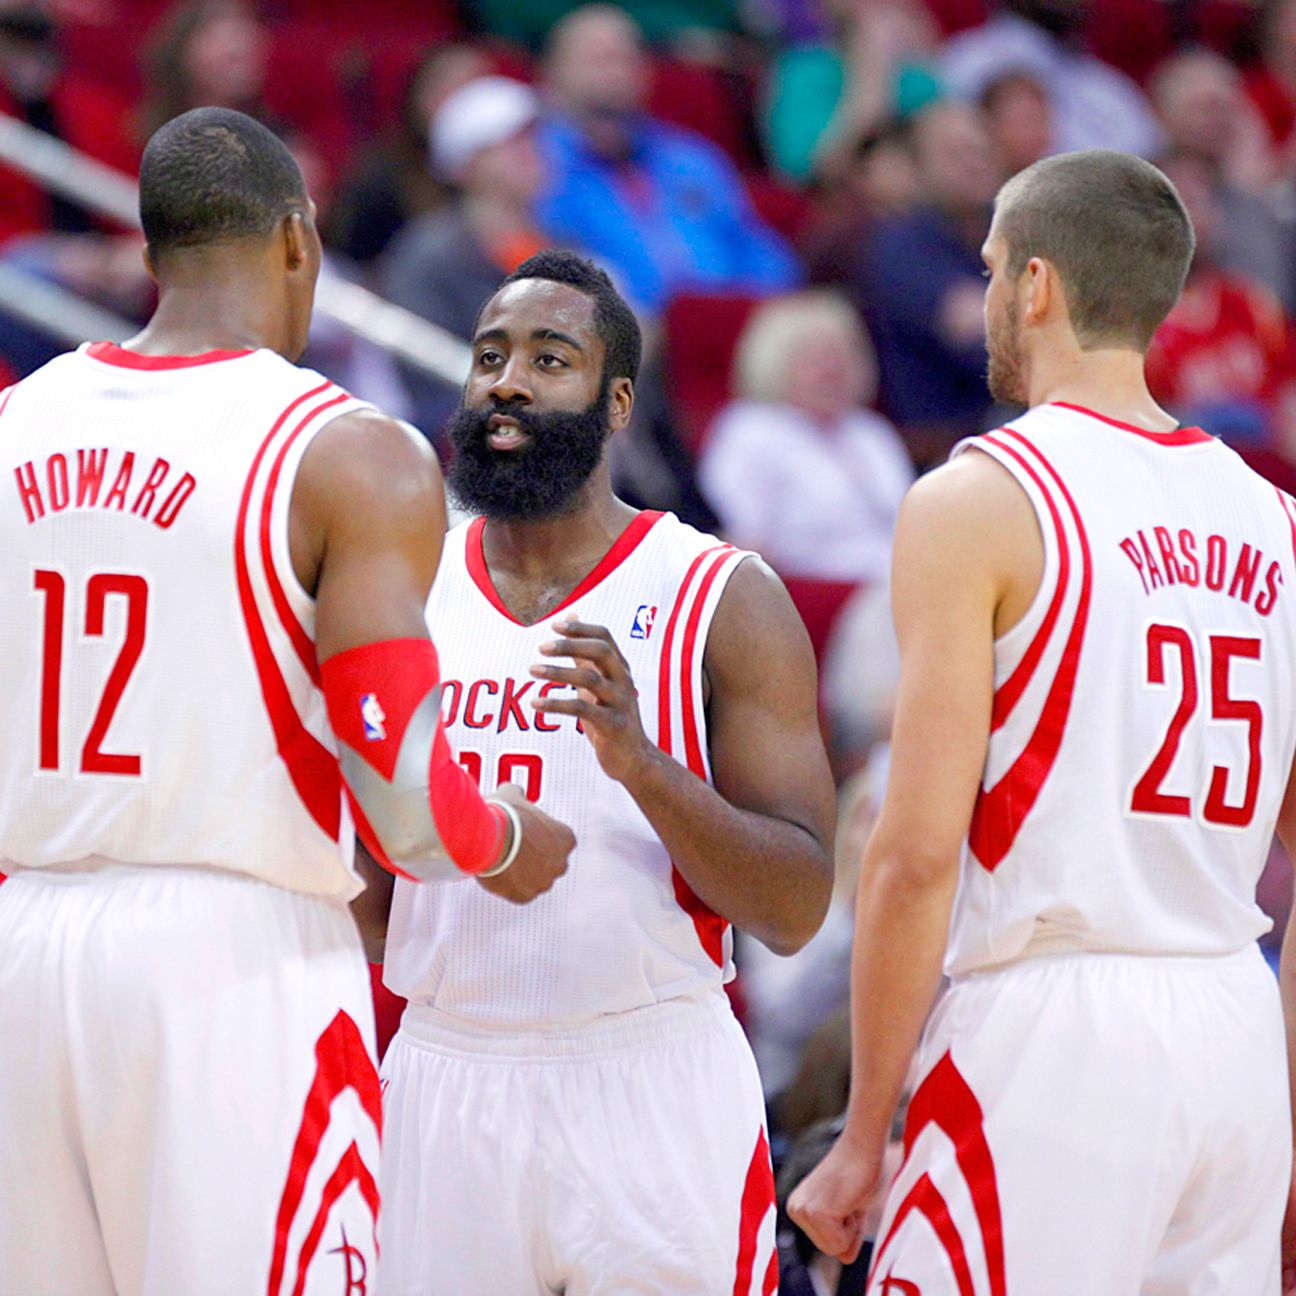 Houston Rockets Where To Watch The Upcoming Match Espn: Roster Reload: Next Moves For Houston Rockets